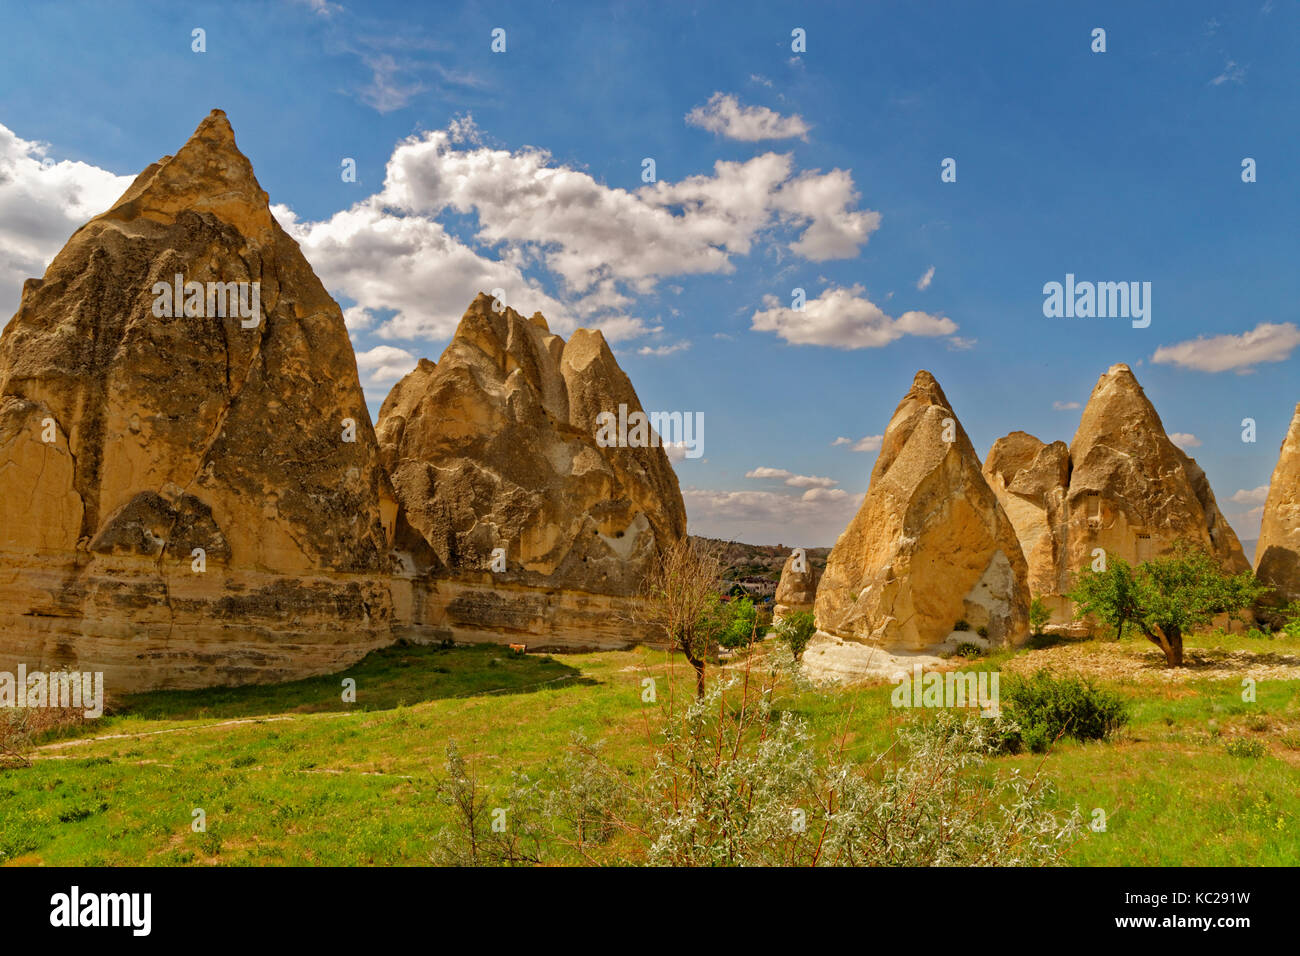 Eroded sandstone formations and cave dwellings at Goreme National Park, Nevsehir, Cappadocia, Turkey. - Stock Image